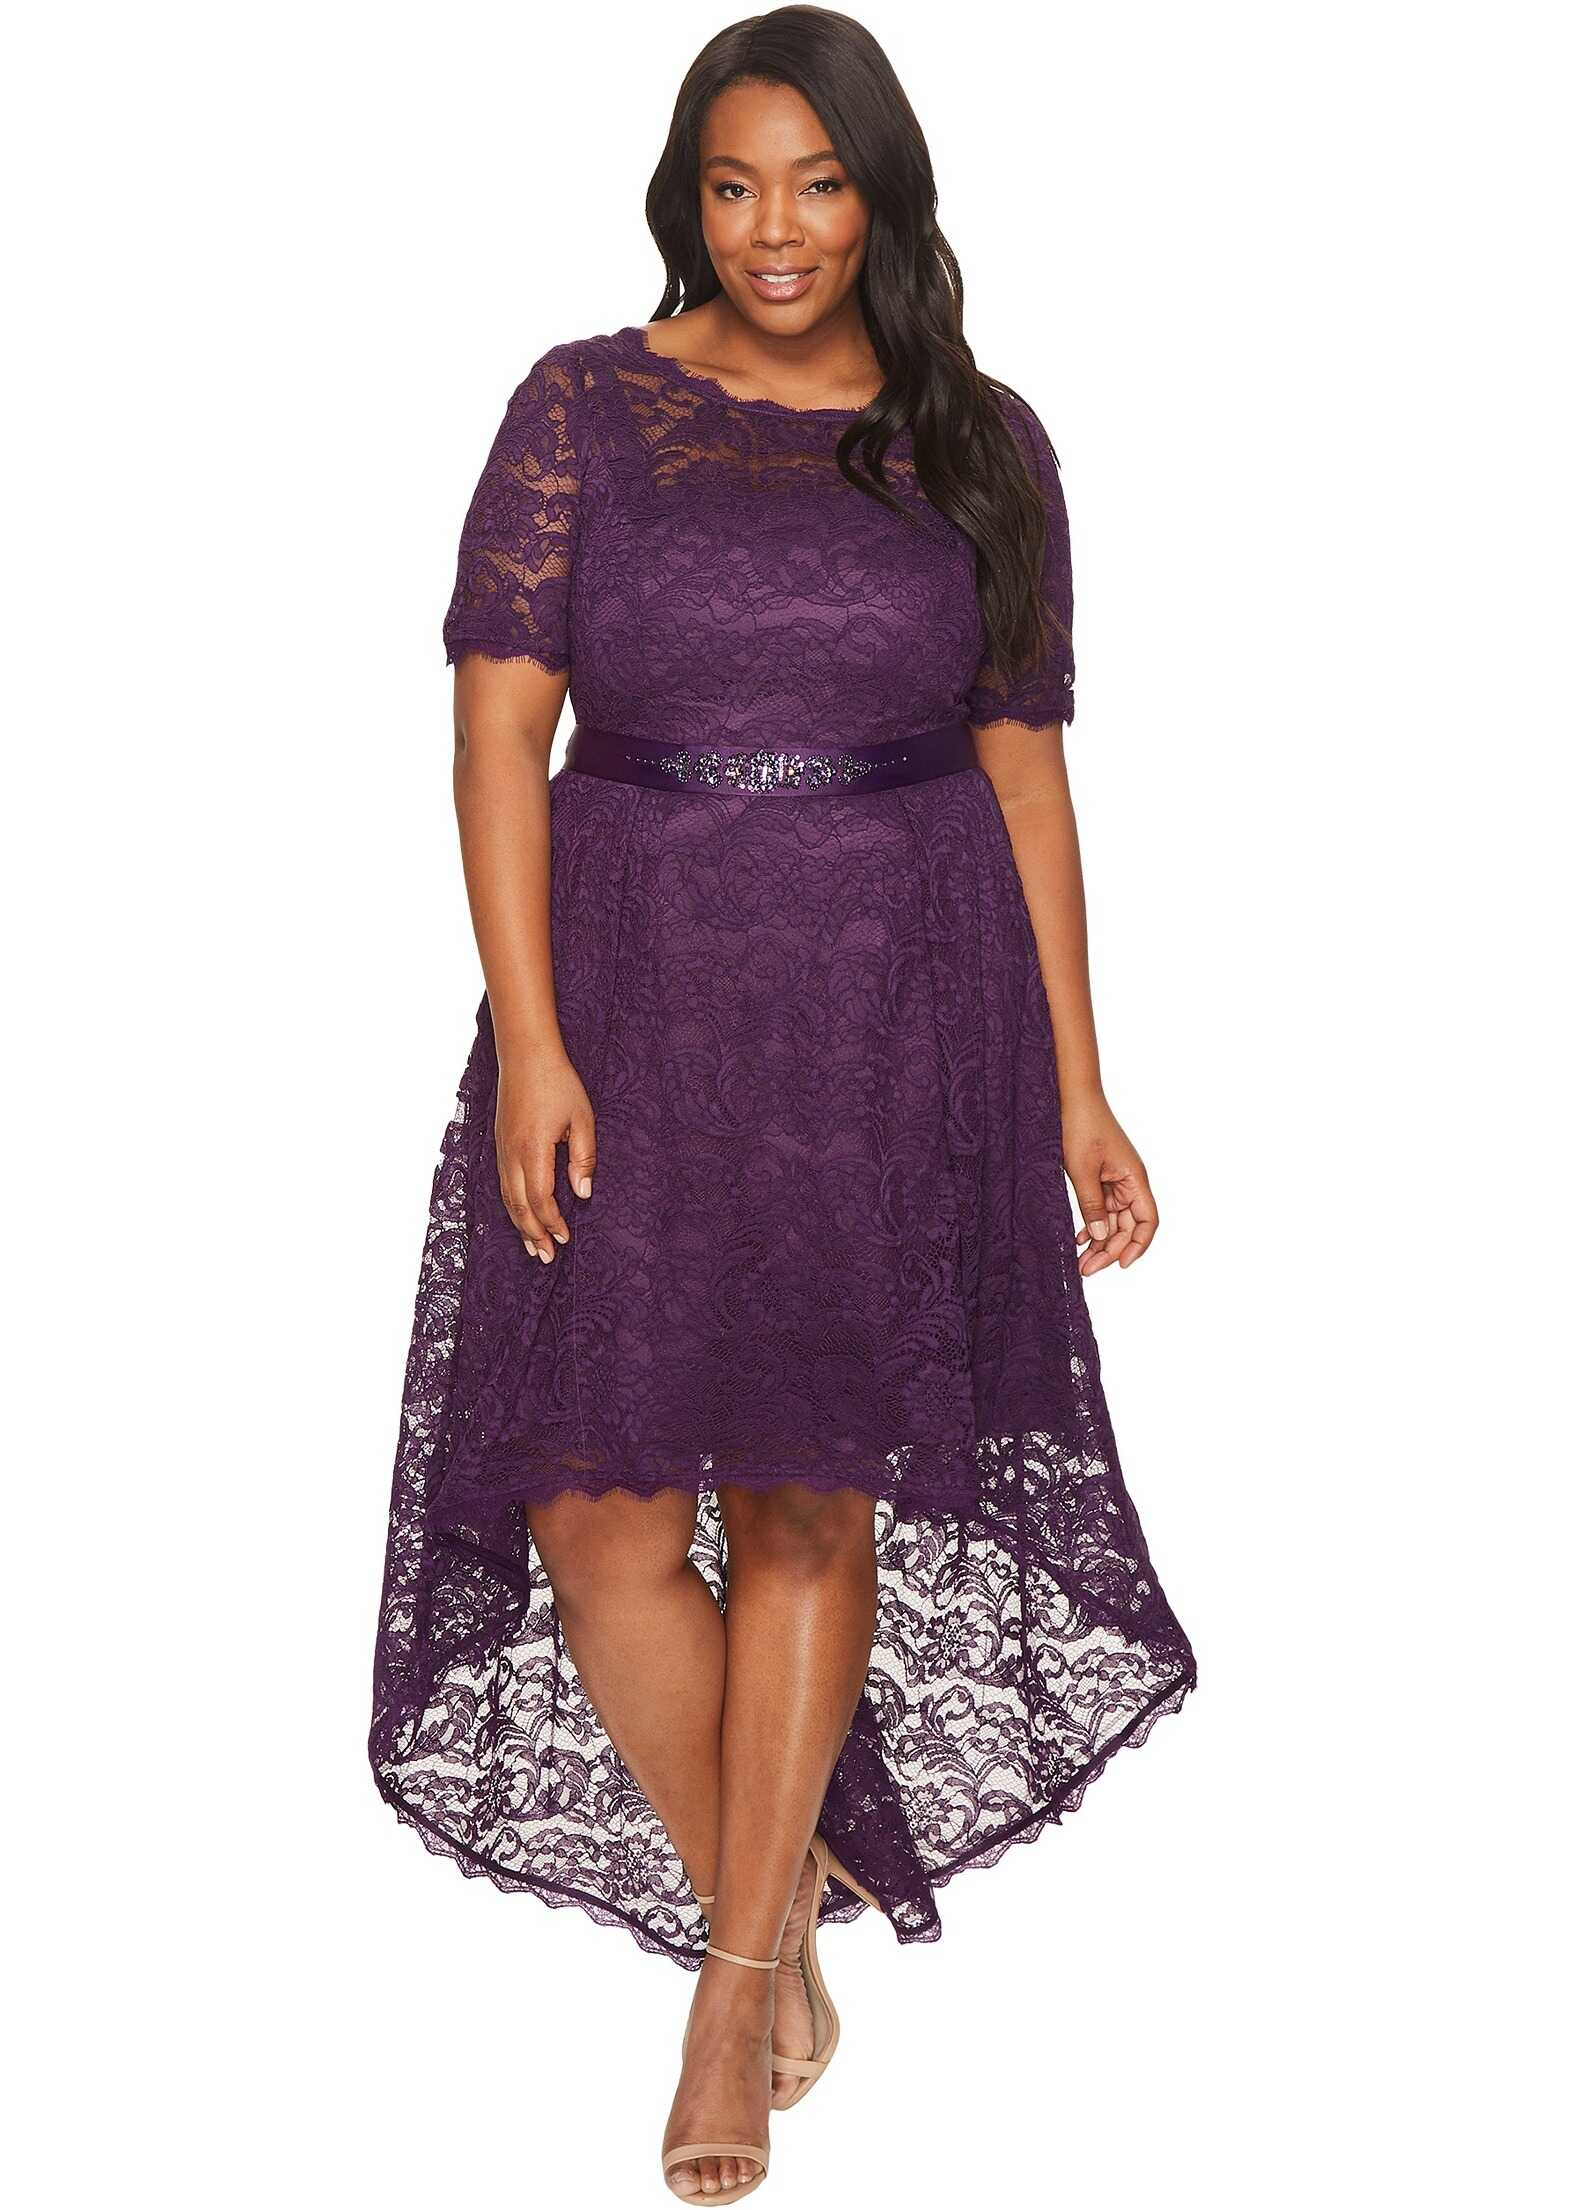 Adrianna Papell Plus Size Short Sleeve Lace Dress with High-Low Hem Night Wine